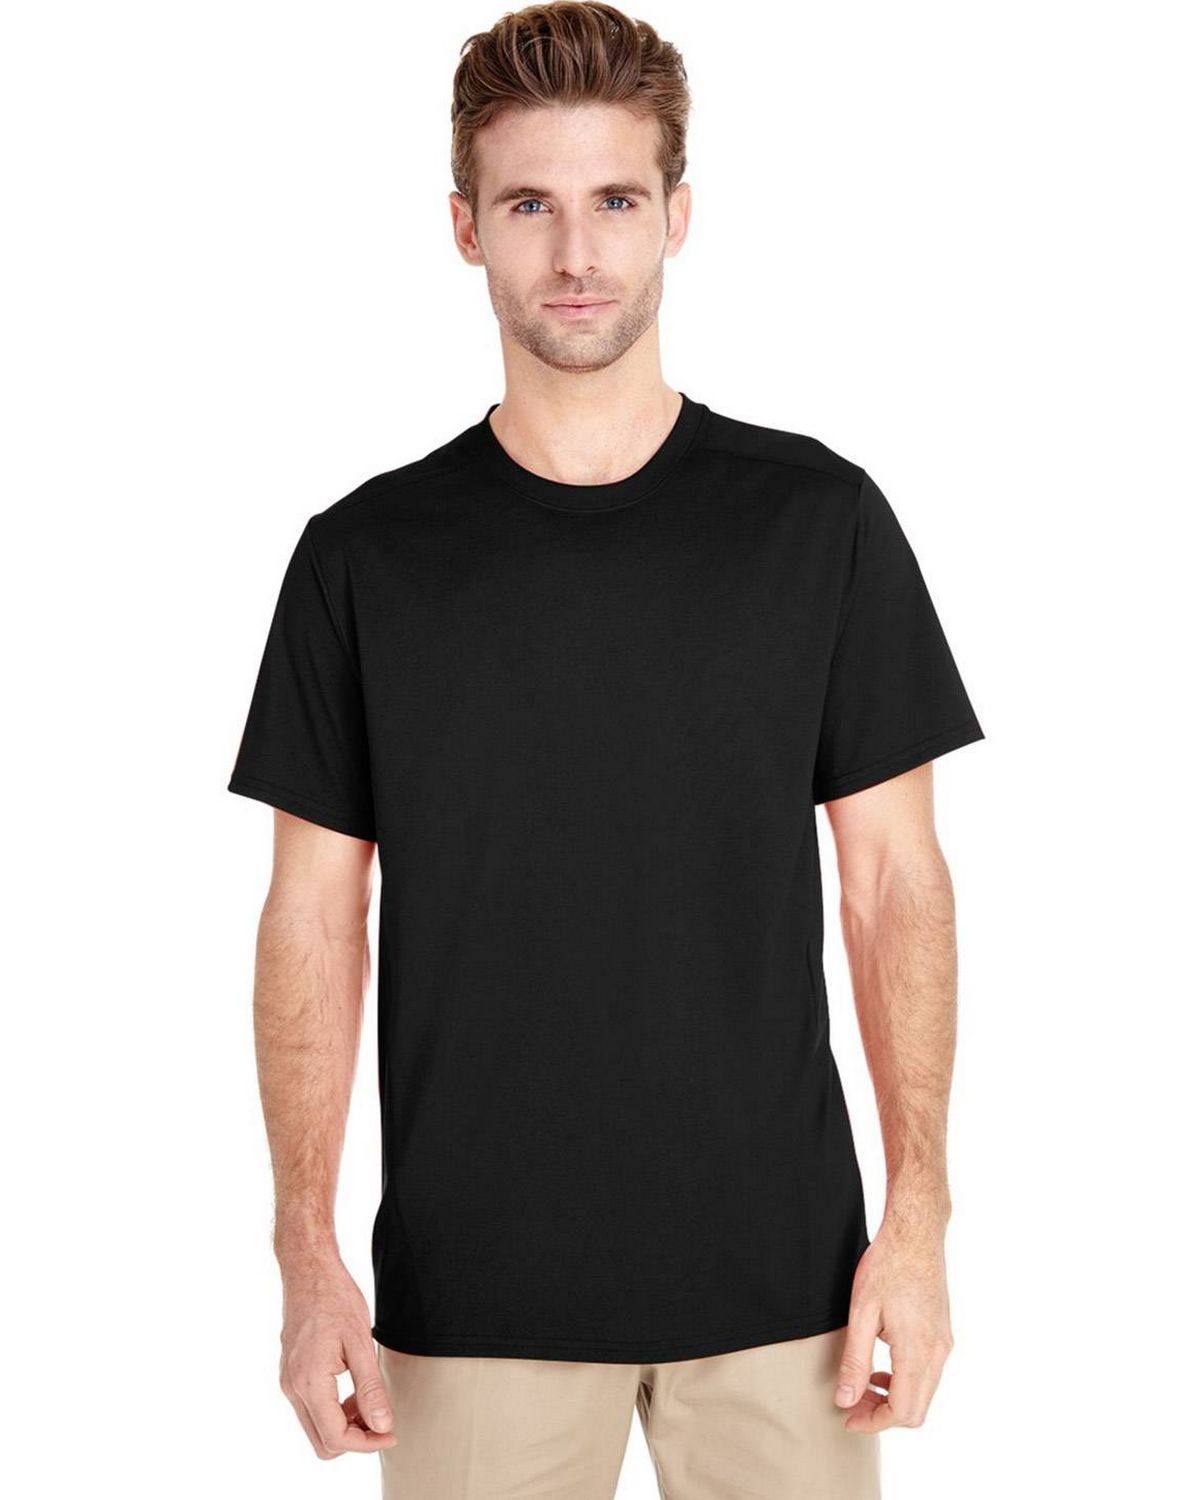 Gildan 47000 Performance T-Shirt - Black - M 47000